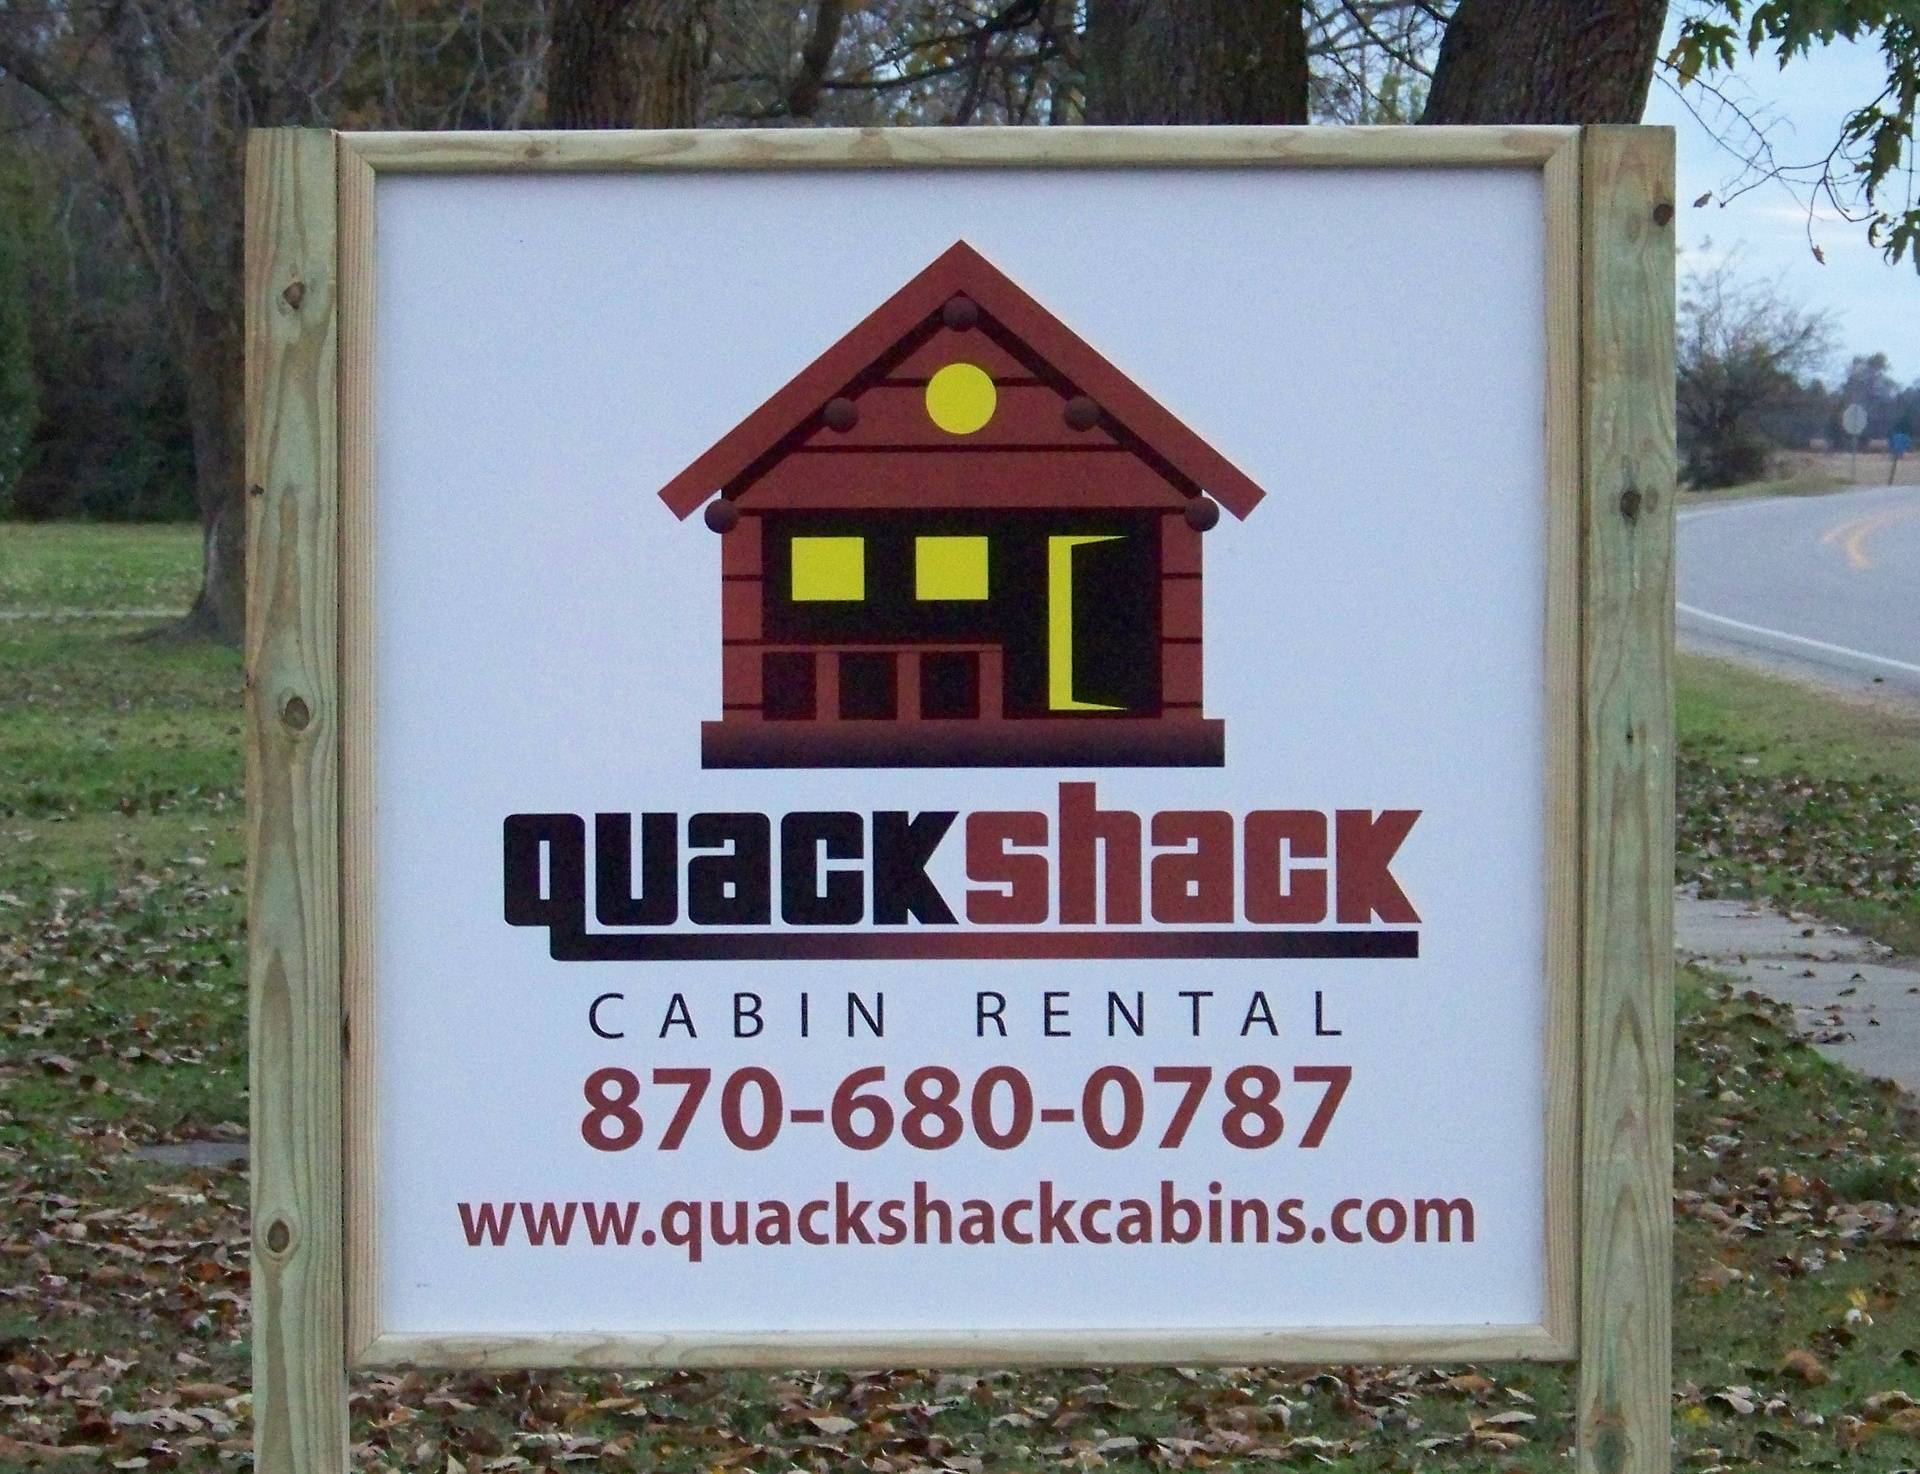 Quack Shack Cabins, 100 Plum Street, Knobel, Arkansas, 72435, USA